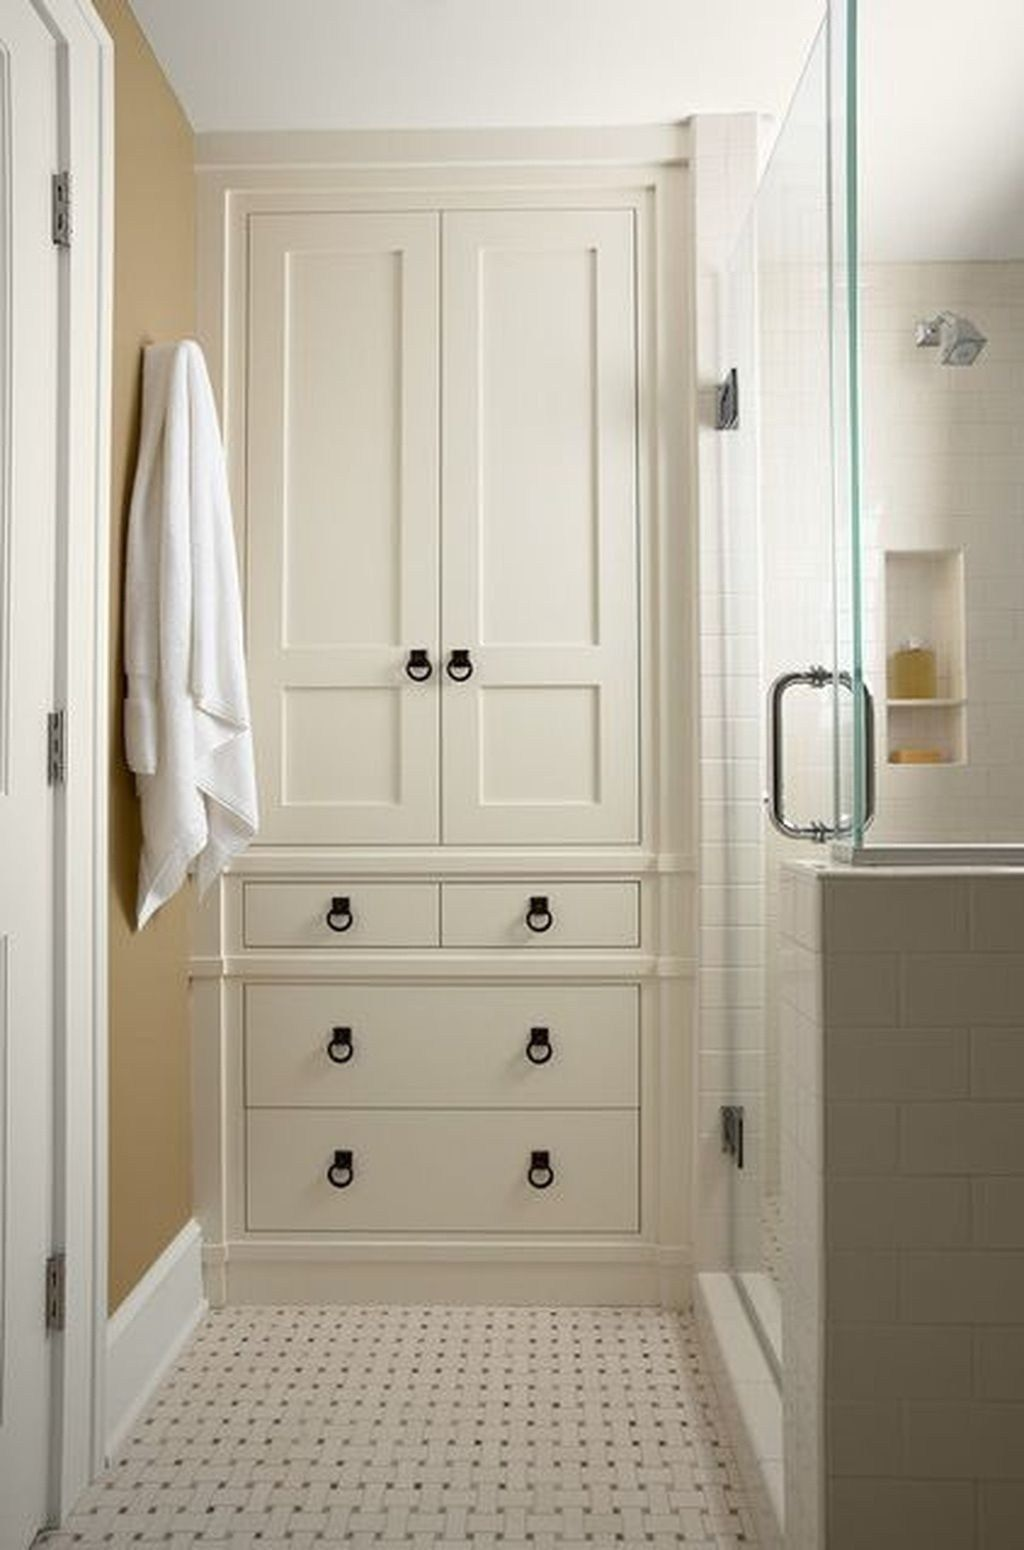 20 Elegant And Simple Bathroom Designs For Small Spaces Bathroom Closet Designs Simple Bathroom Bathroom Tall Cabinet